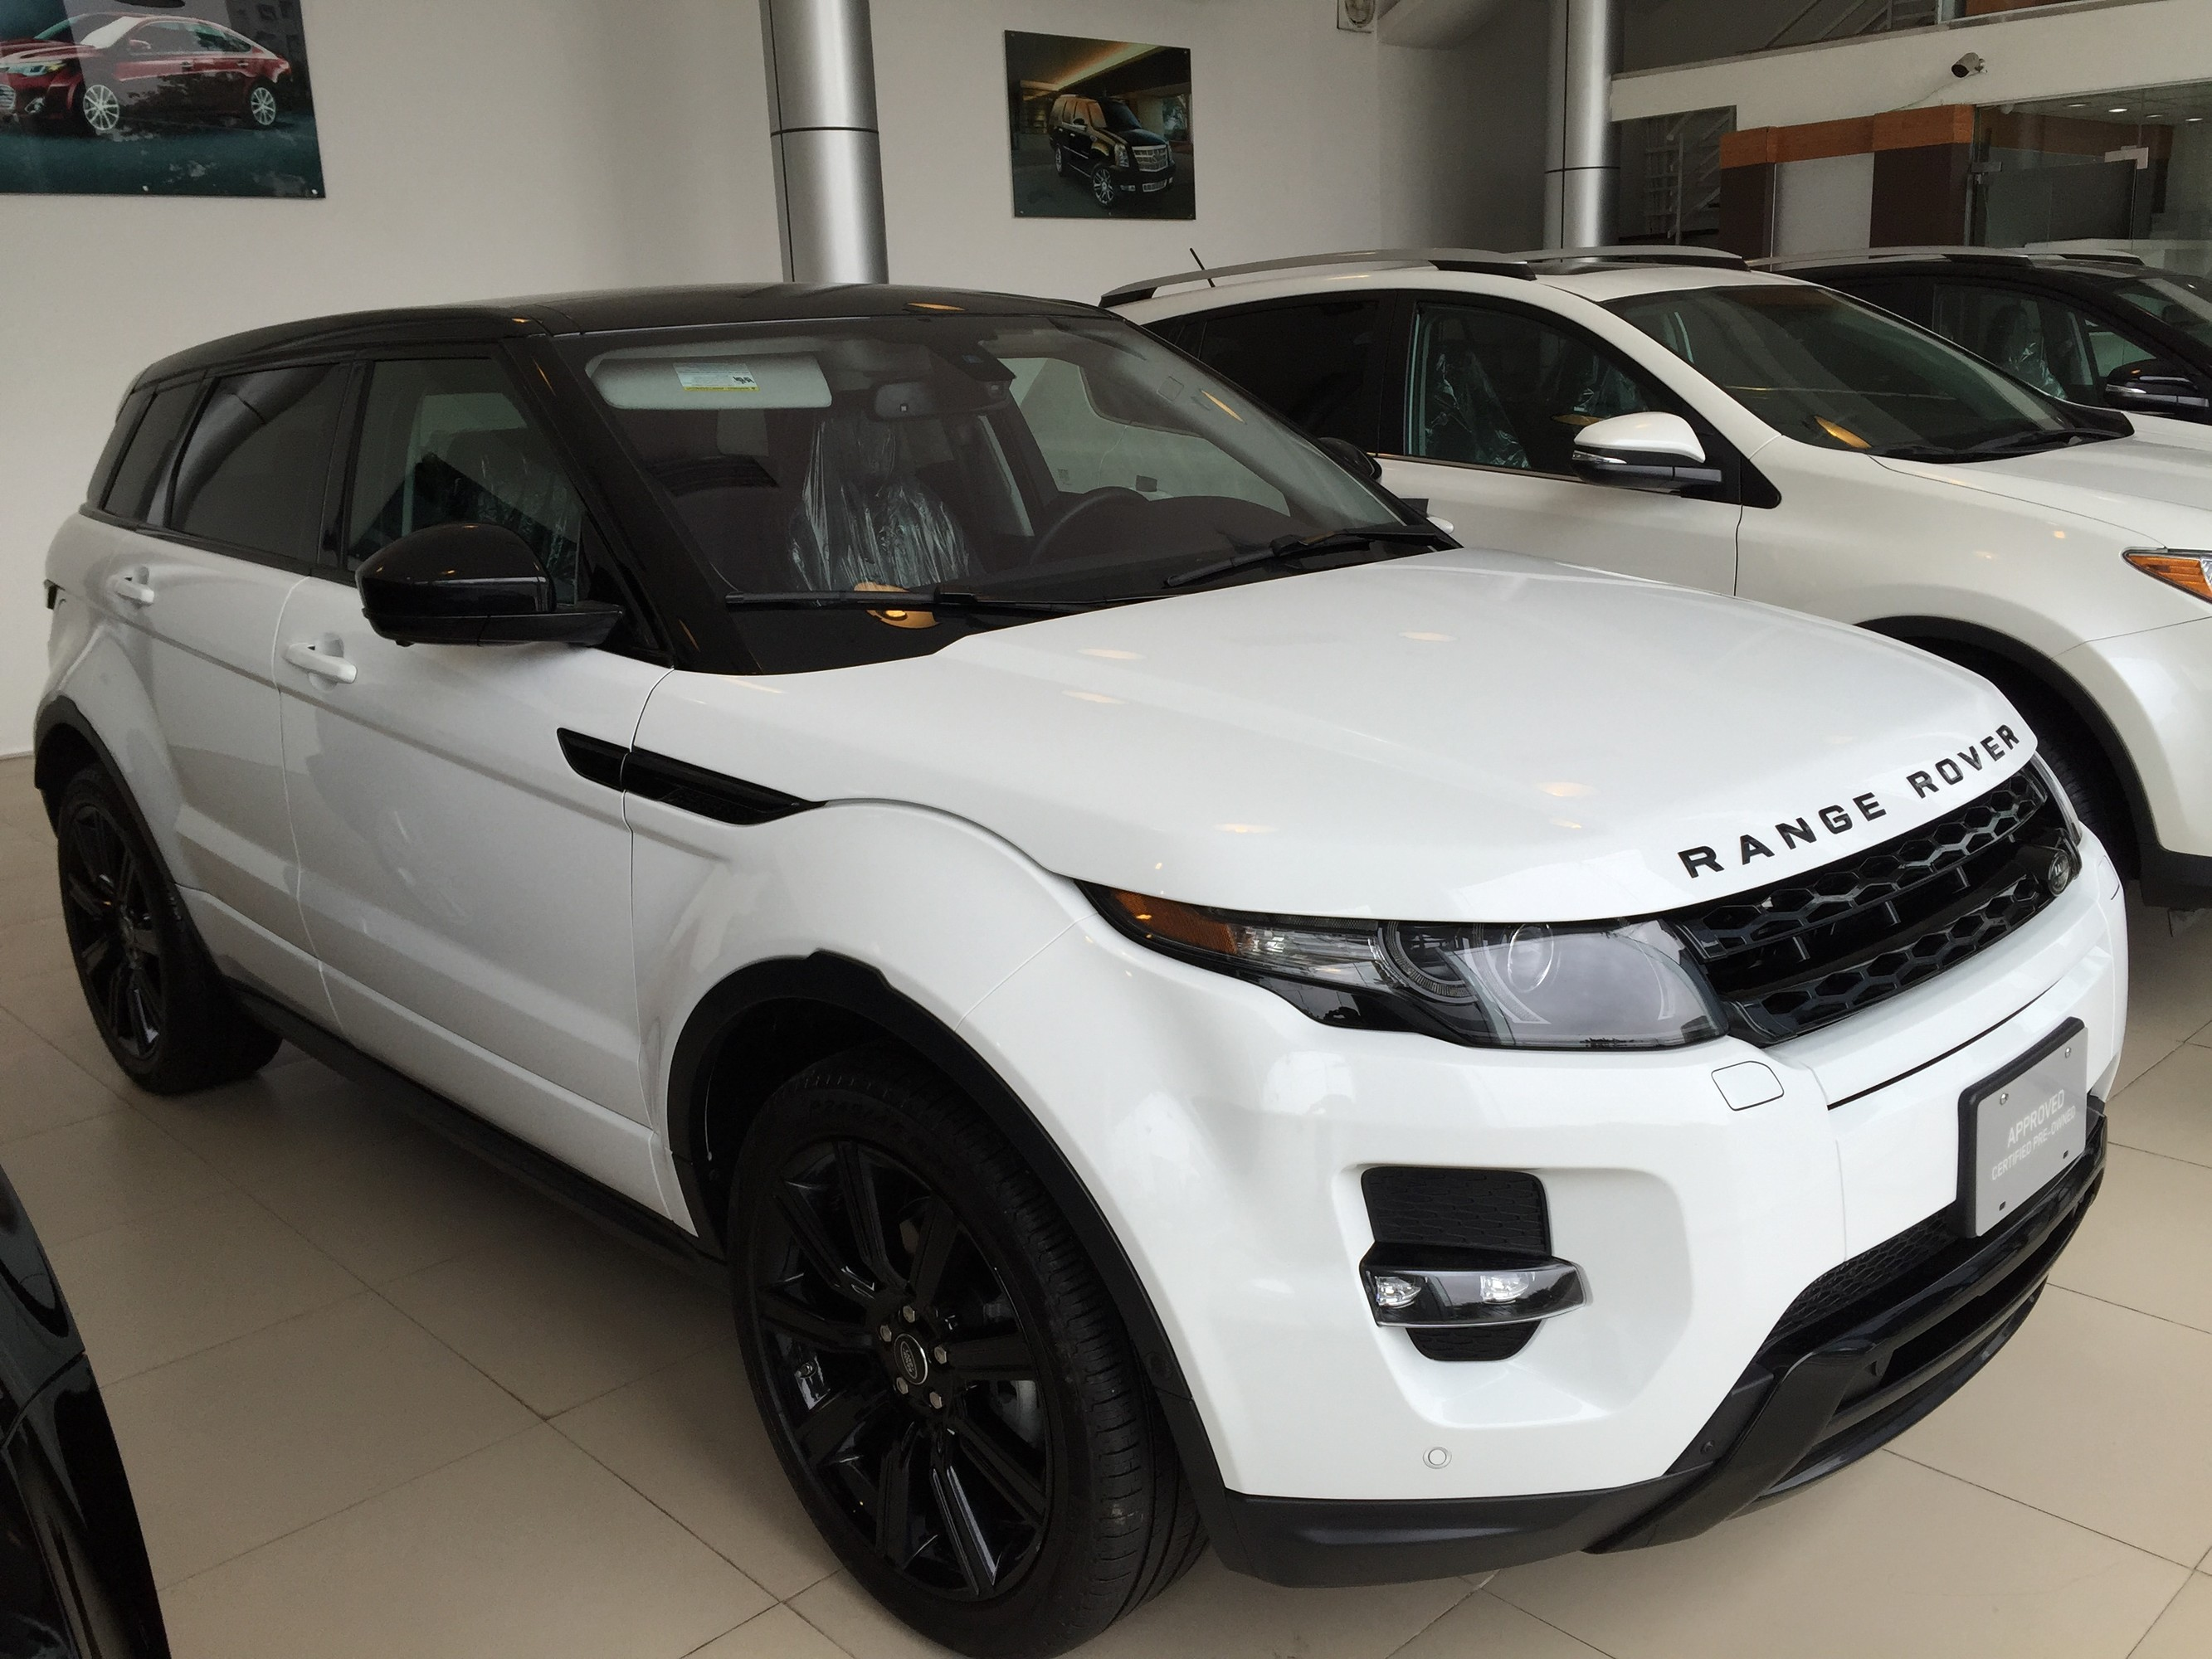 b n range rover evoque 2 0 black edition model 2015 full option c phanh kho ng c ch gi range. Black Bedroom Furniture Sets. Home Design Ideas